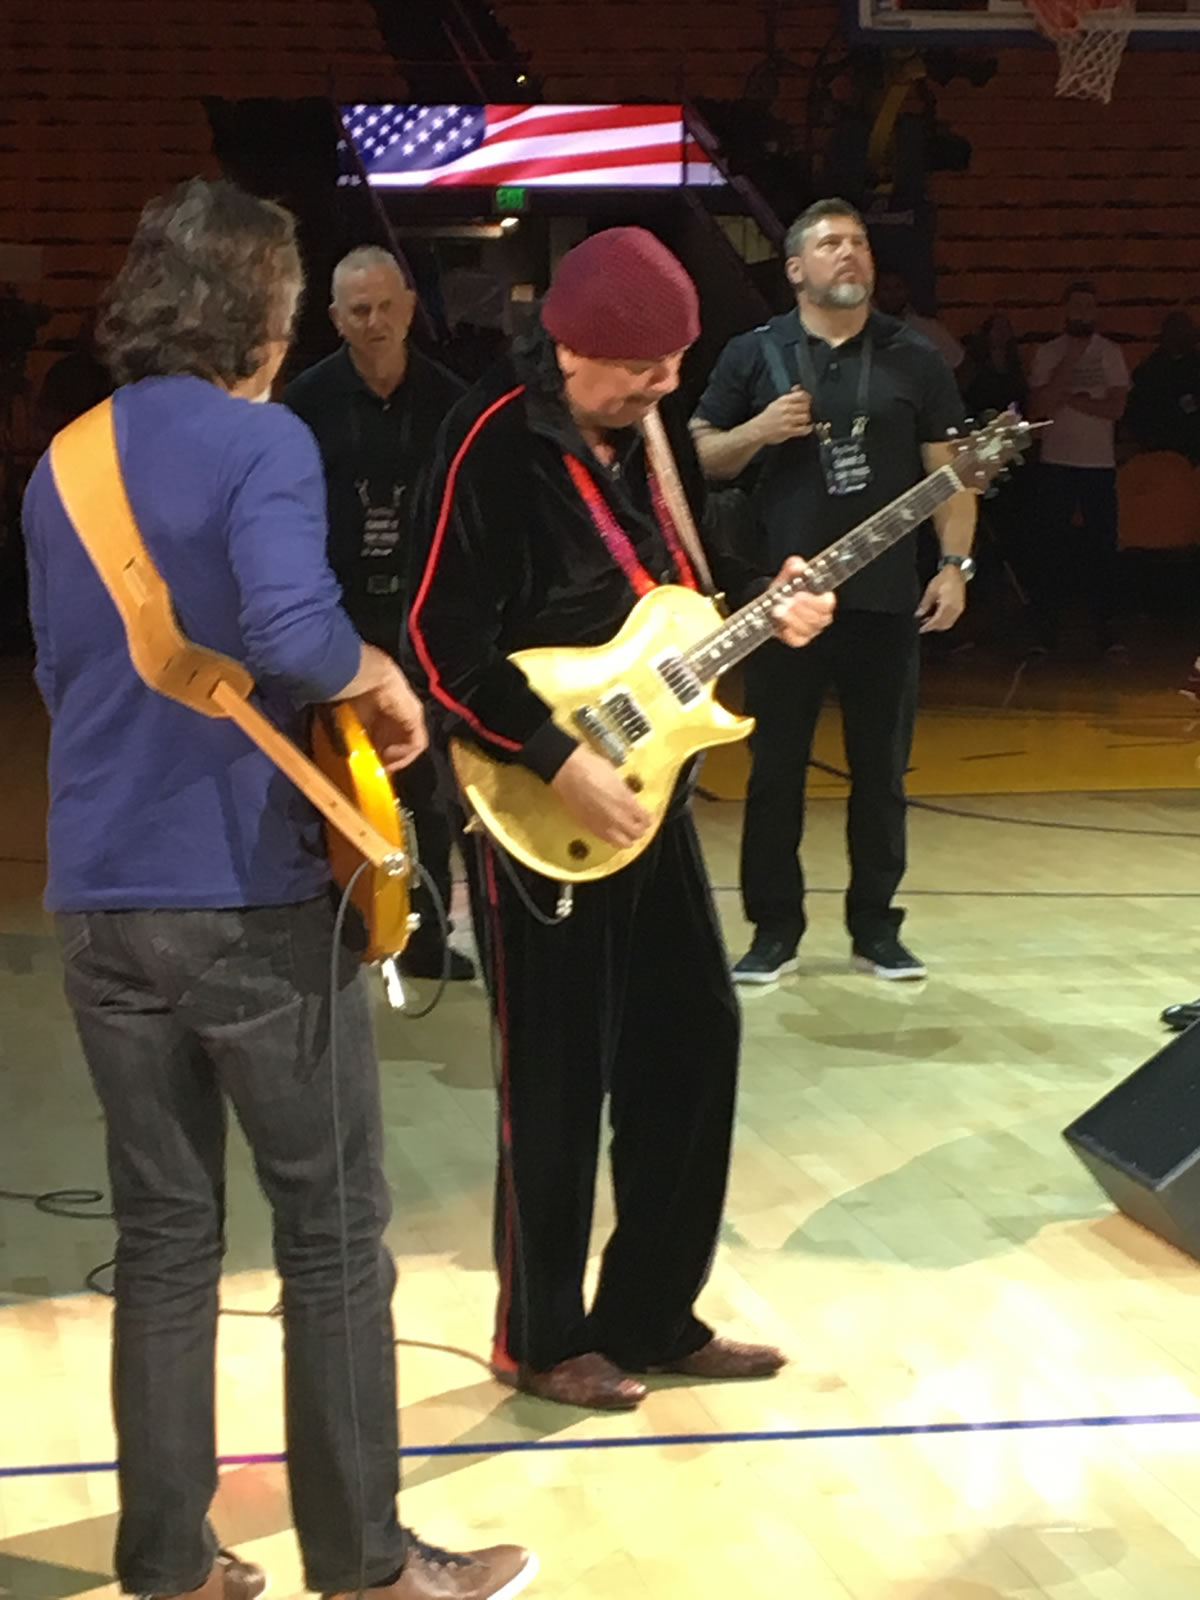 <div class='meta'><div class='origin-logo' data-origin='none'></div><span class='caption-text' data-credit='KGO-TV'>Carlos Santana practices the &#34;National Anthem&#34; before game 2 of the NBA Finals in Oakland, Calif. on Sunday, June 6, 2017.</span></div>